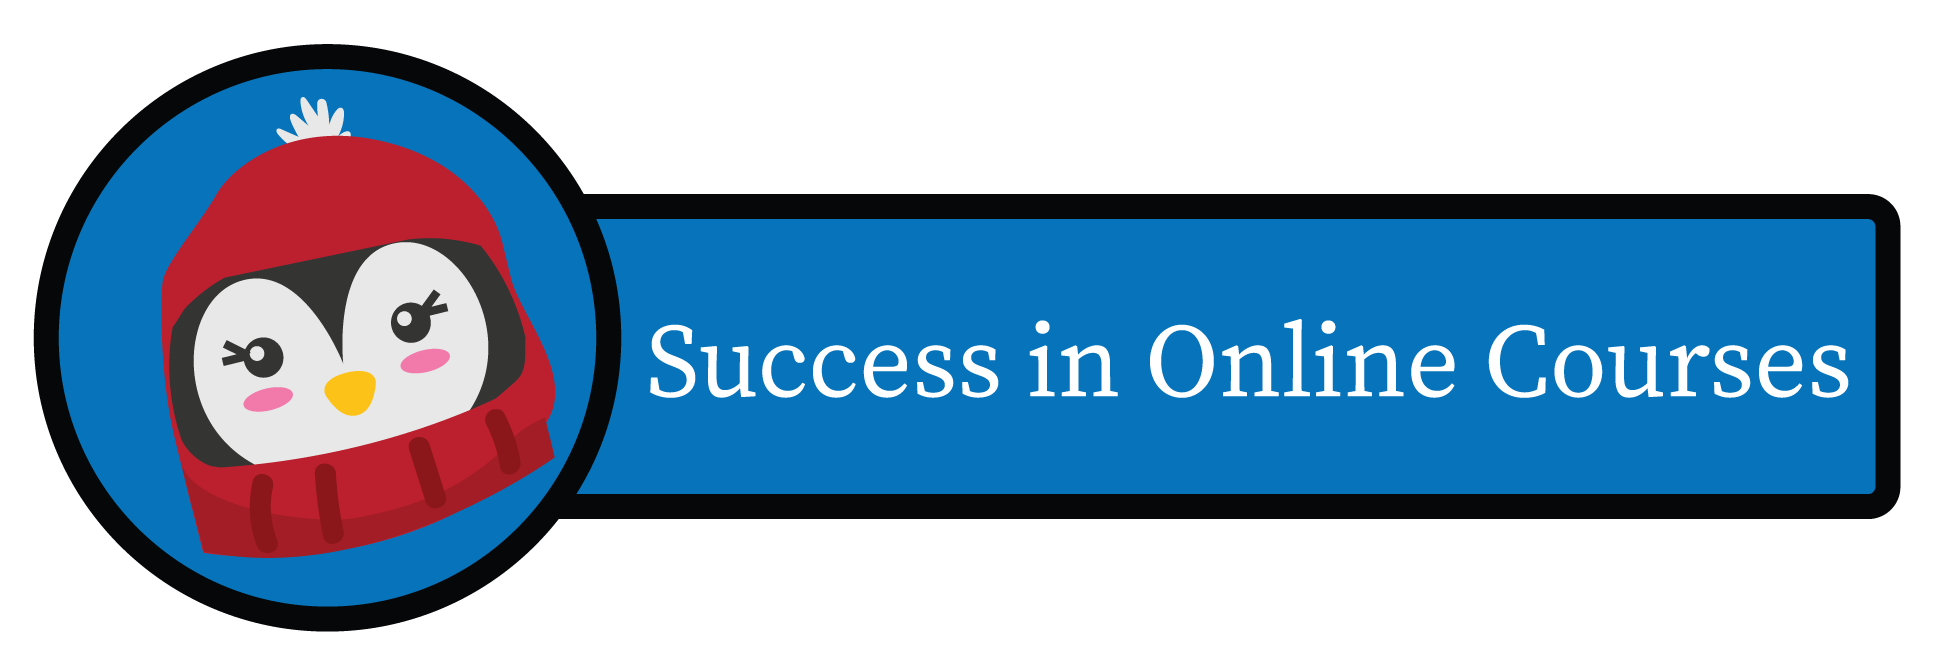 Success in Online Courses